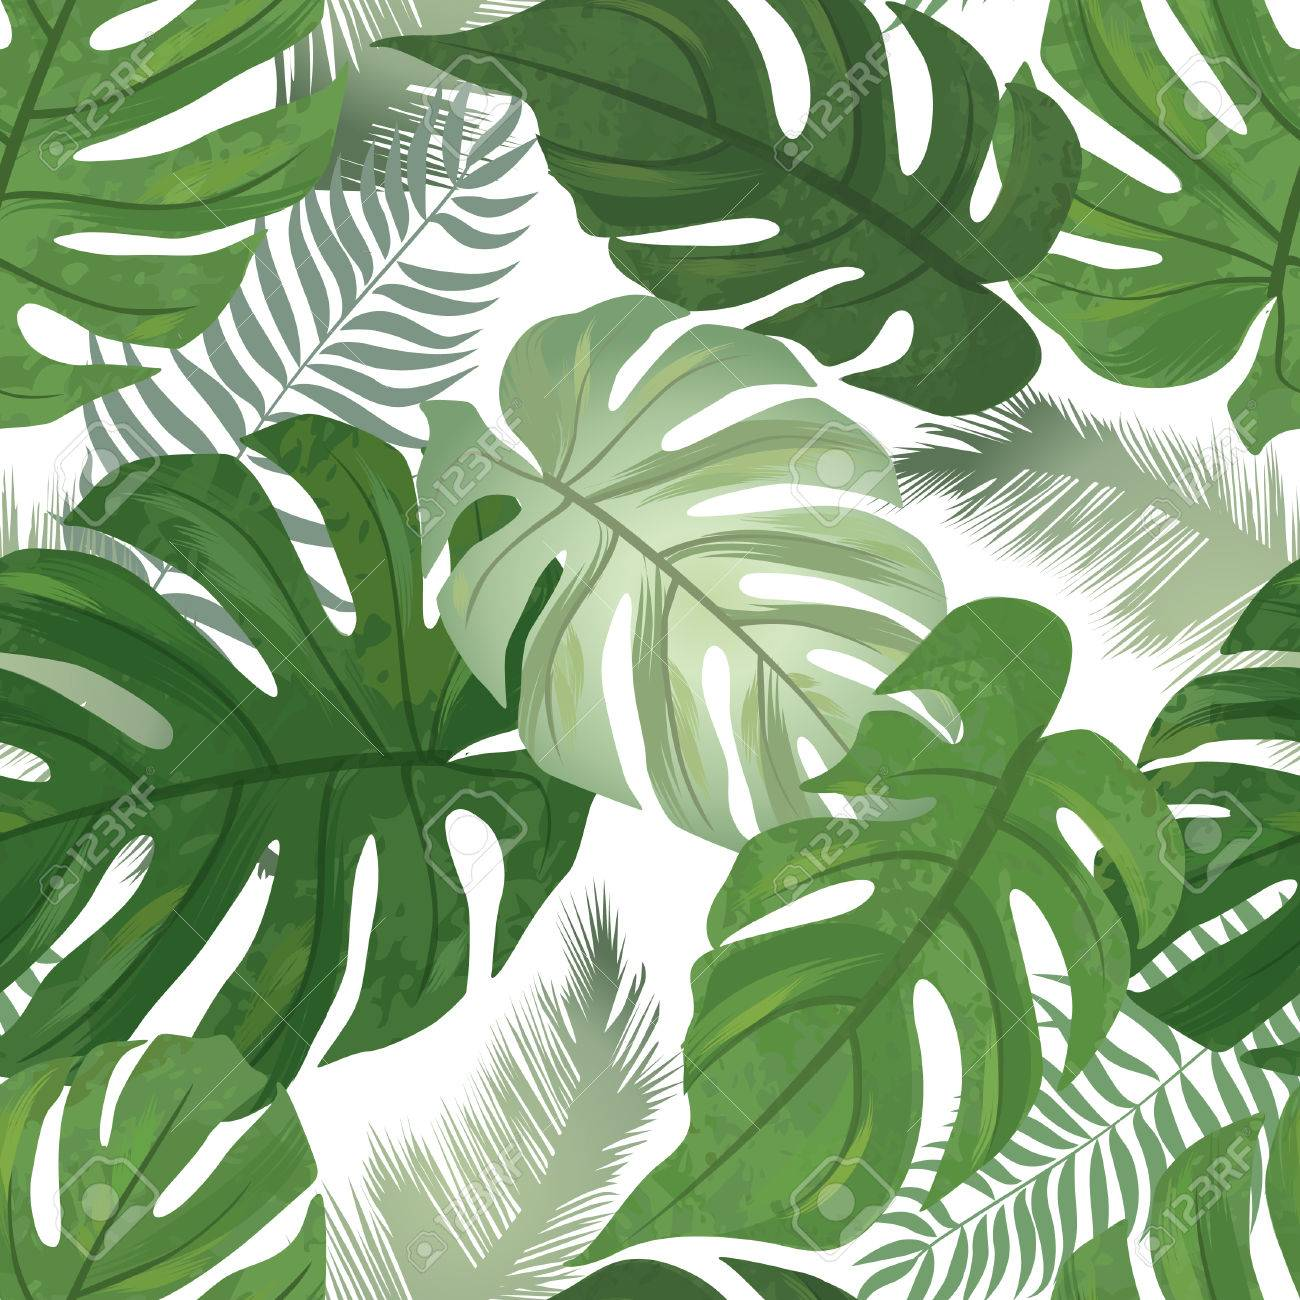 Floral Seamless Pattern Tropical Leaves Background Palm Tree Royalty Free Cliparts Vectors And Stock Illustration Image 82926574 Download the perfect tropical leaves pictures. floral seamless pattern tropical leaves background palm tree royalty free cliparts vectors and stock illustration image 82926574